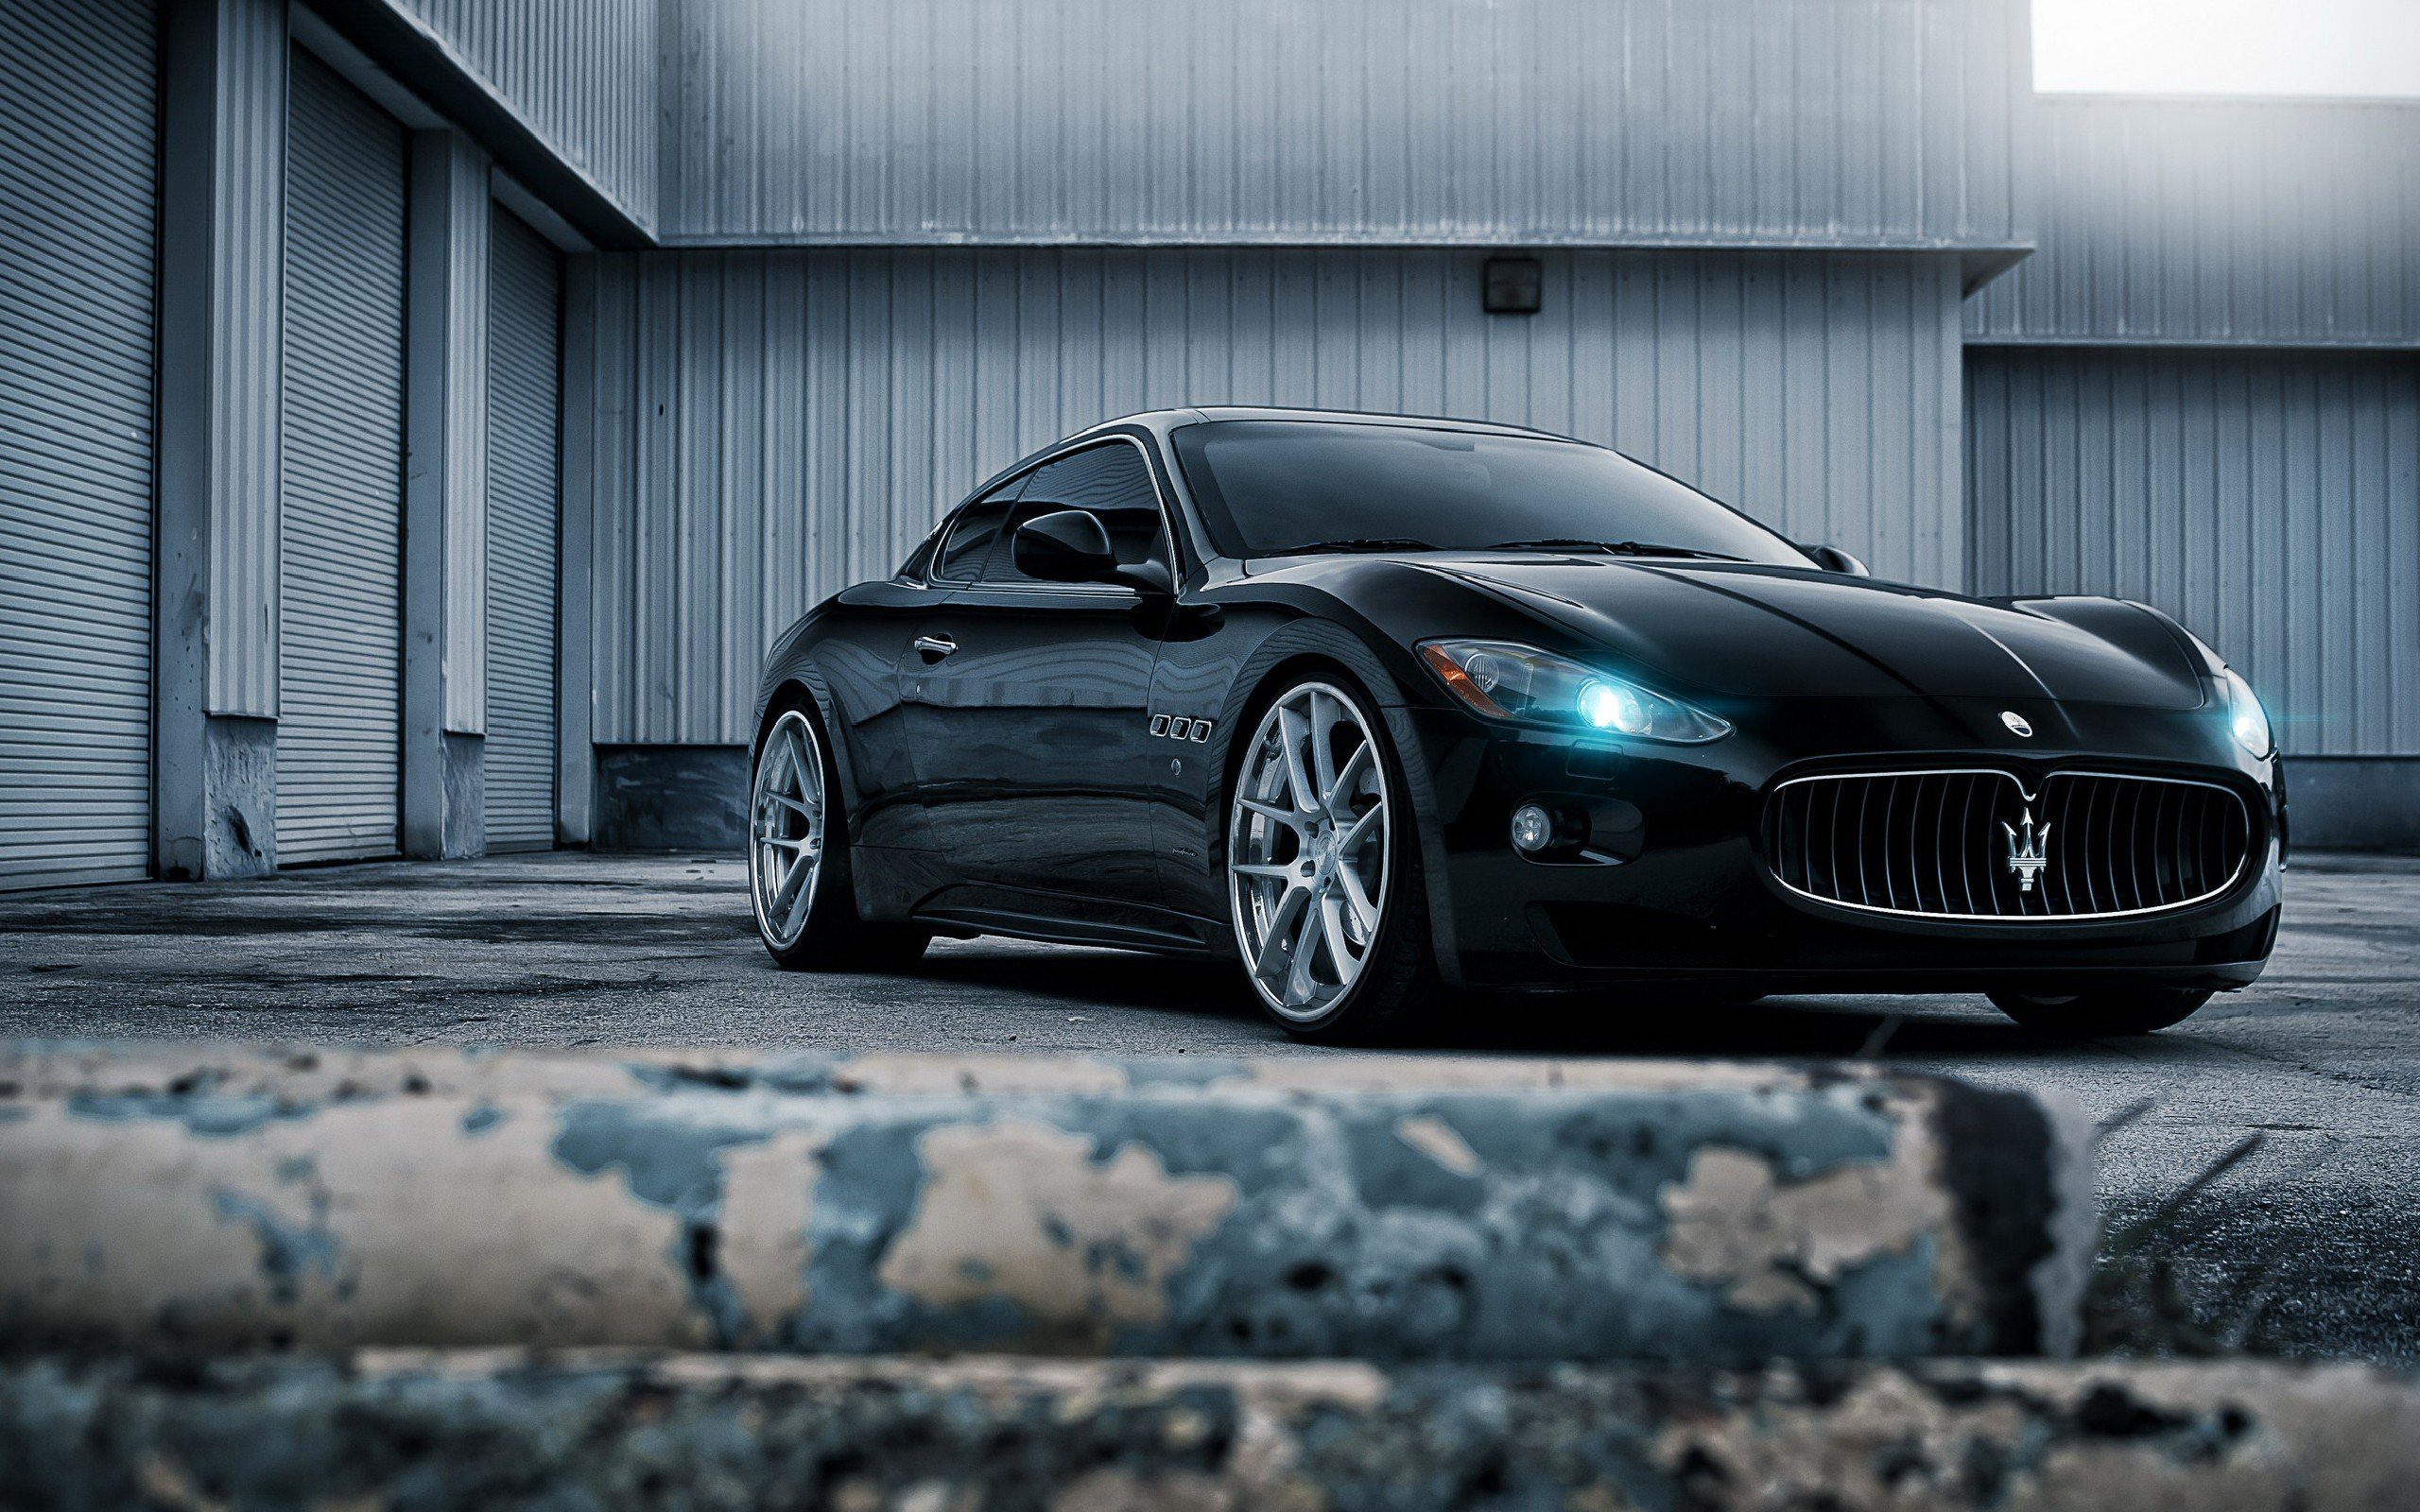 Maserati GranTurismo Wallpapers and Background Images   stmednet 2560x1600